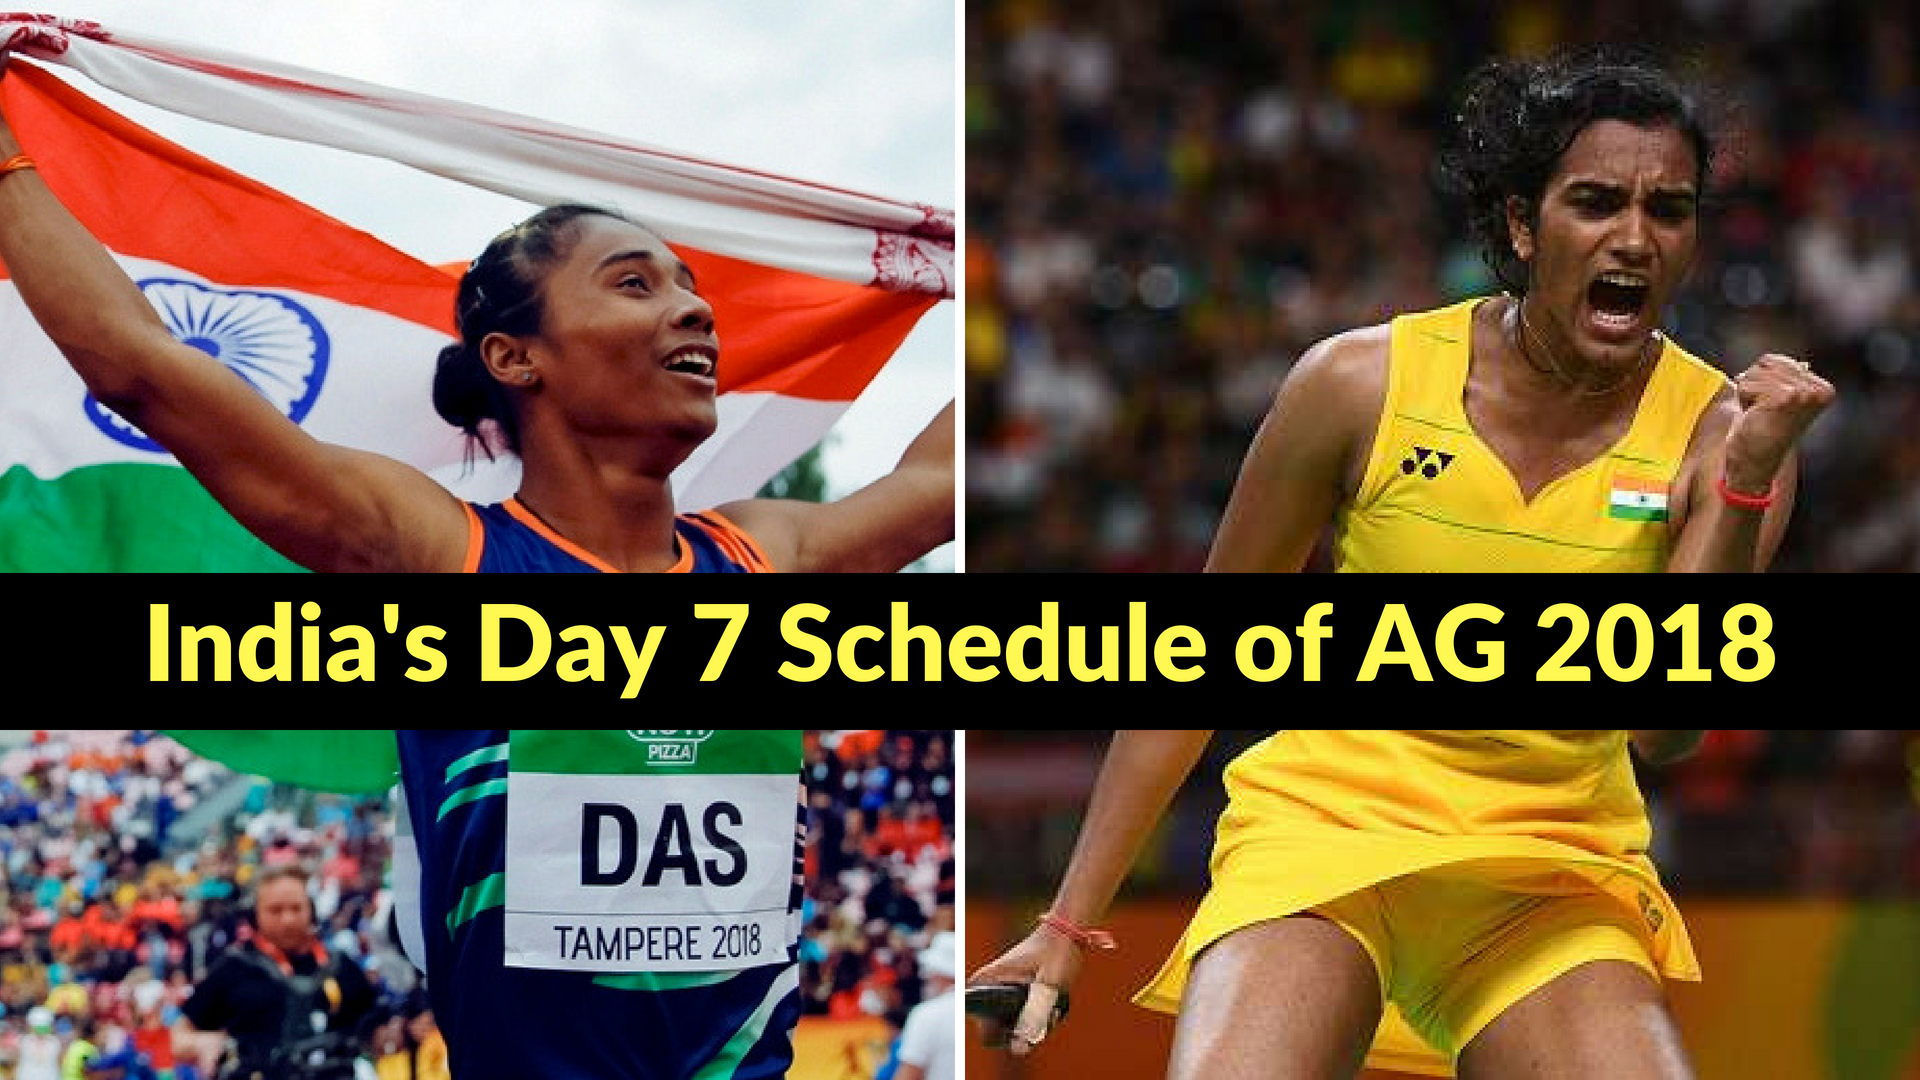 India's Day 7 Schedule of AG 2018